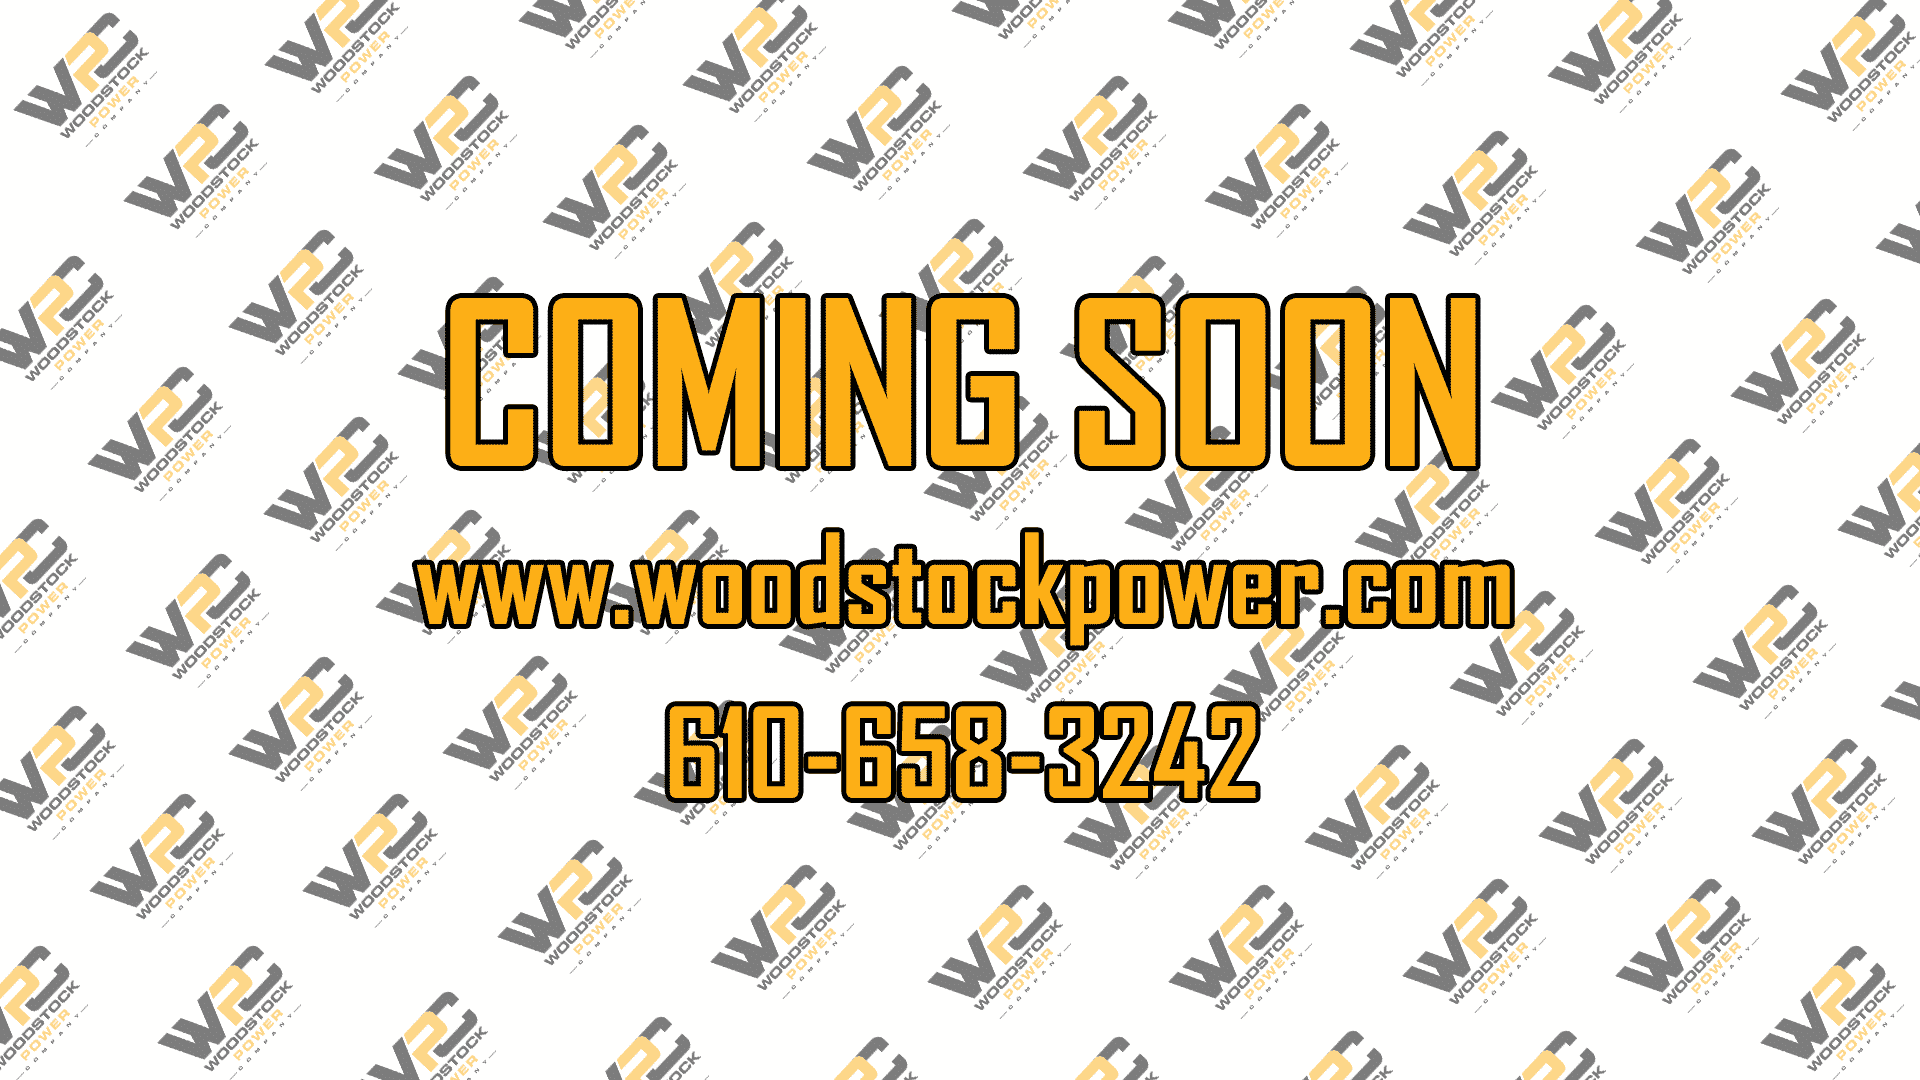 Used 1300 kW Cummins QSK60 Natural Gas Generator – COMING IN!